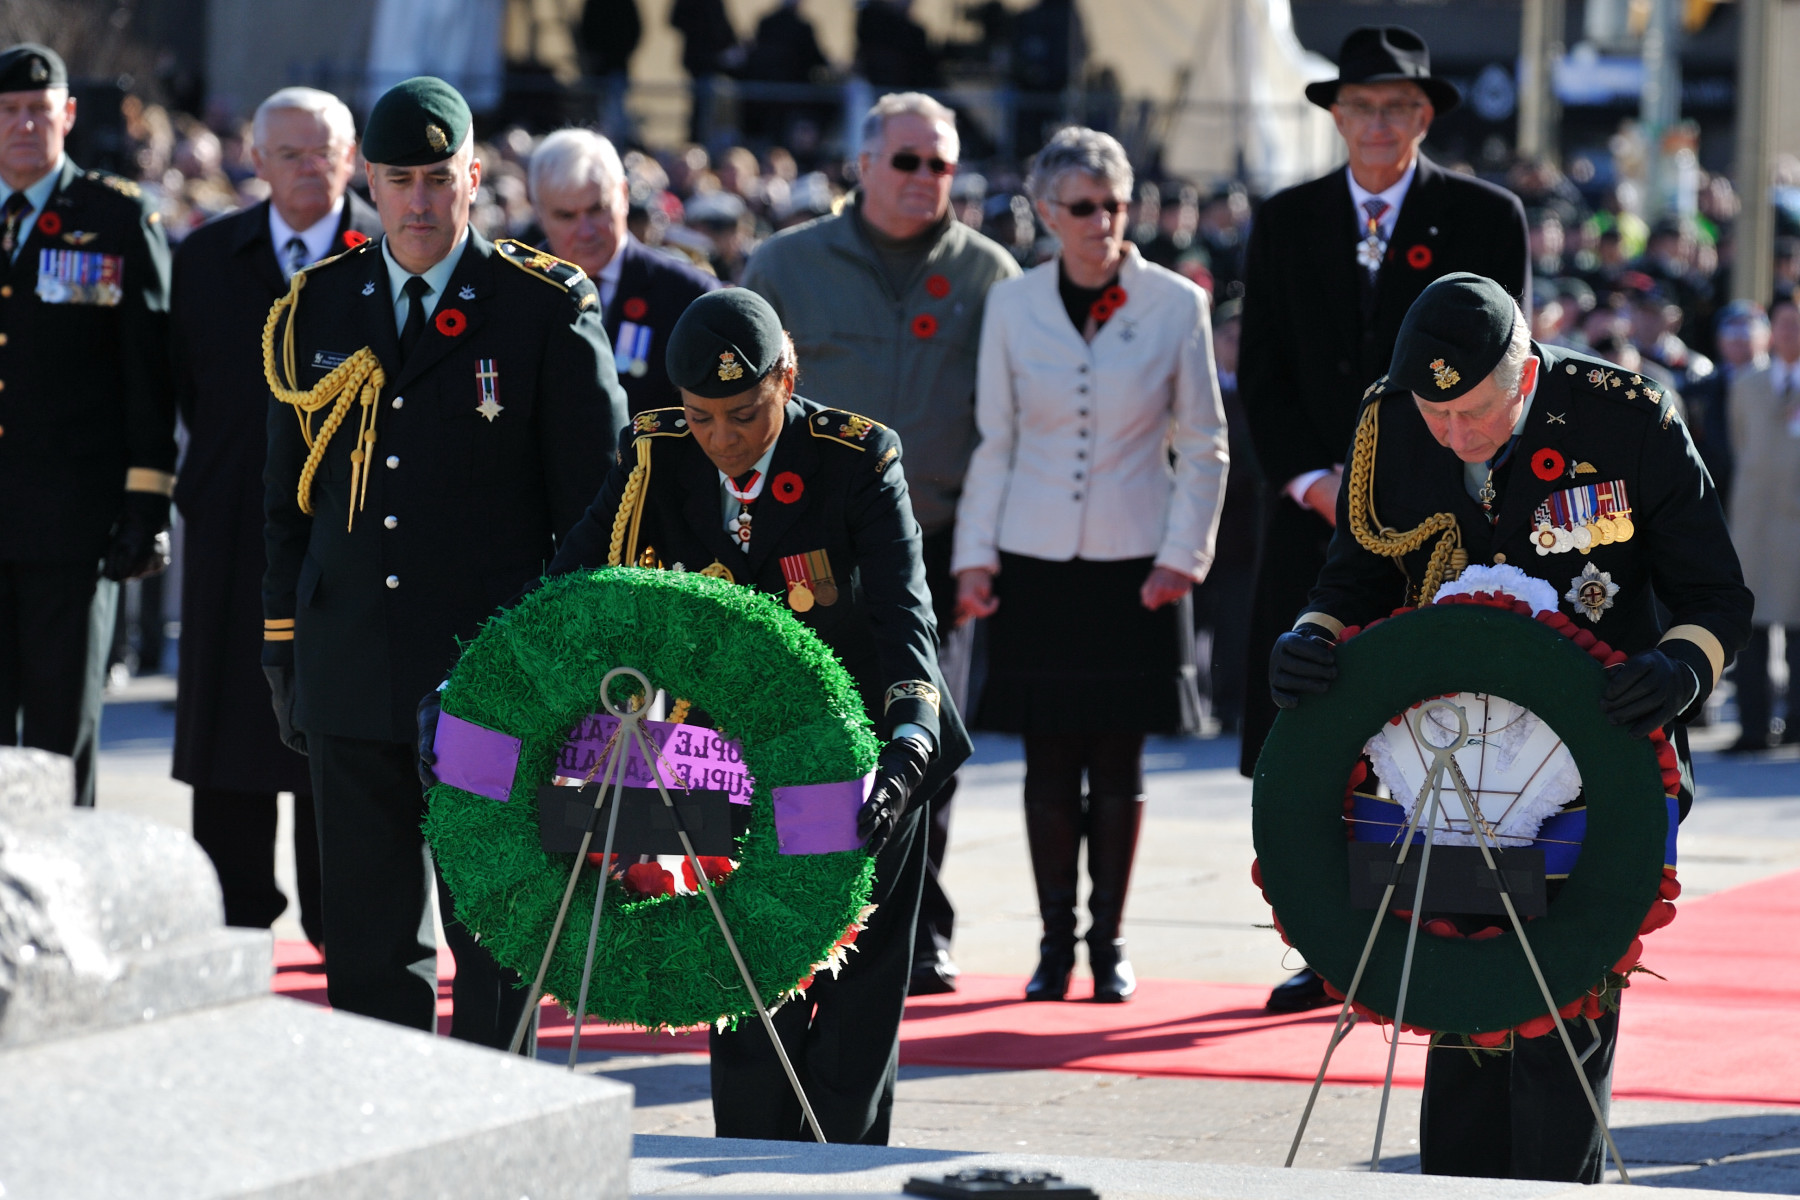 Her Excellency and His Royal Highness both laid a wreath at the foot of the National War Memorial in honour of fallen soldiers.